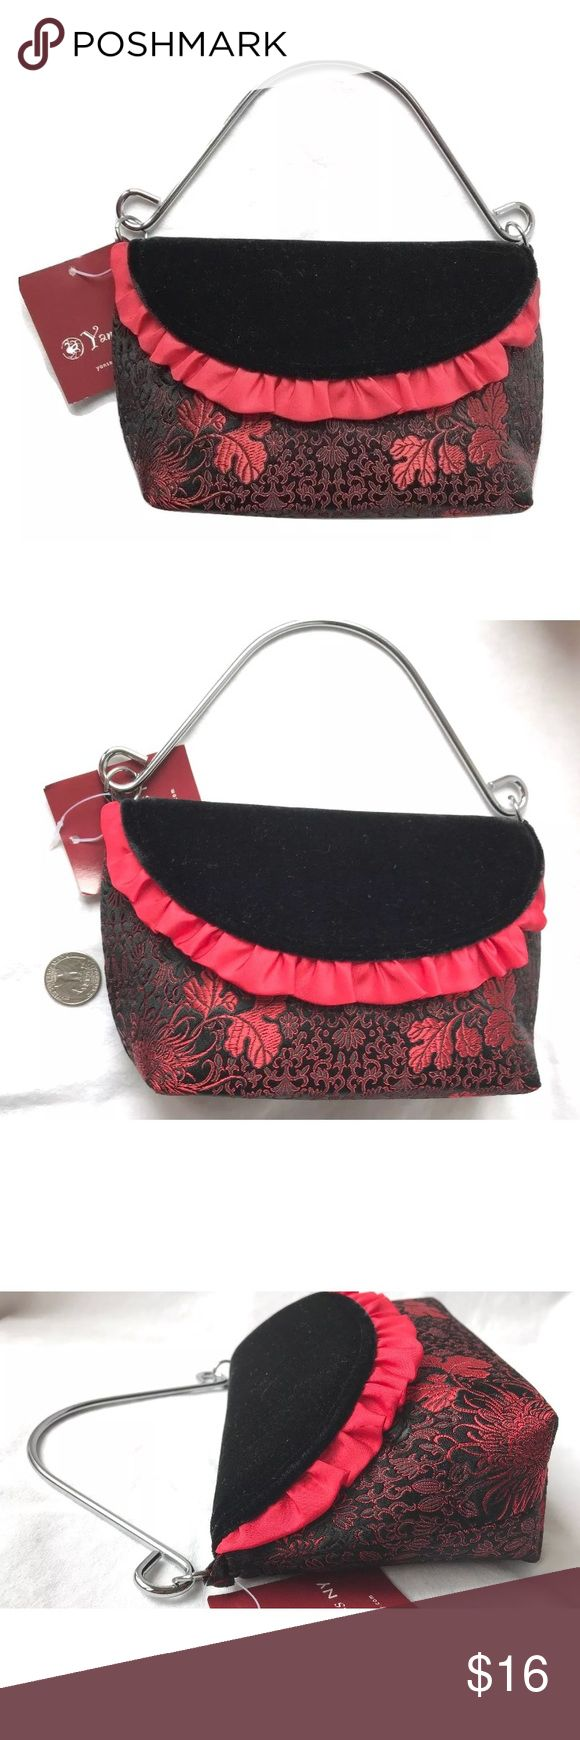 """SMALL Asian Inspired Evening Handbag Super pretty little handbag  The fabric is an faux Asian inspired silk brocade - the fabric is actually 65% rayon & 35% silk  It has a hidden magnet, magnetic flap over closure in a faux velvet, with a ruffle trim  There is a single metal carry handle in a silver tone  Measures approximately 7"""" across, 5"""" top to bottom, bottom width depth is 2.5"""", the carry handle drop is just shy of 4""""  65% Rayon, 35% Silk Made in China  Thank you so much! Yans NY Bags…"""